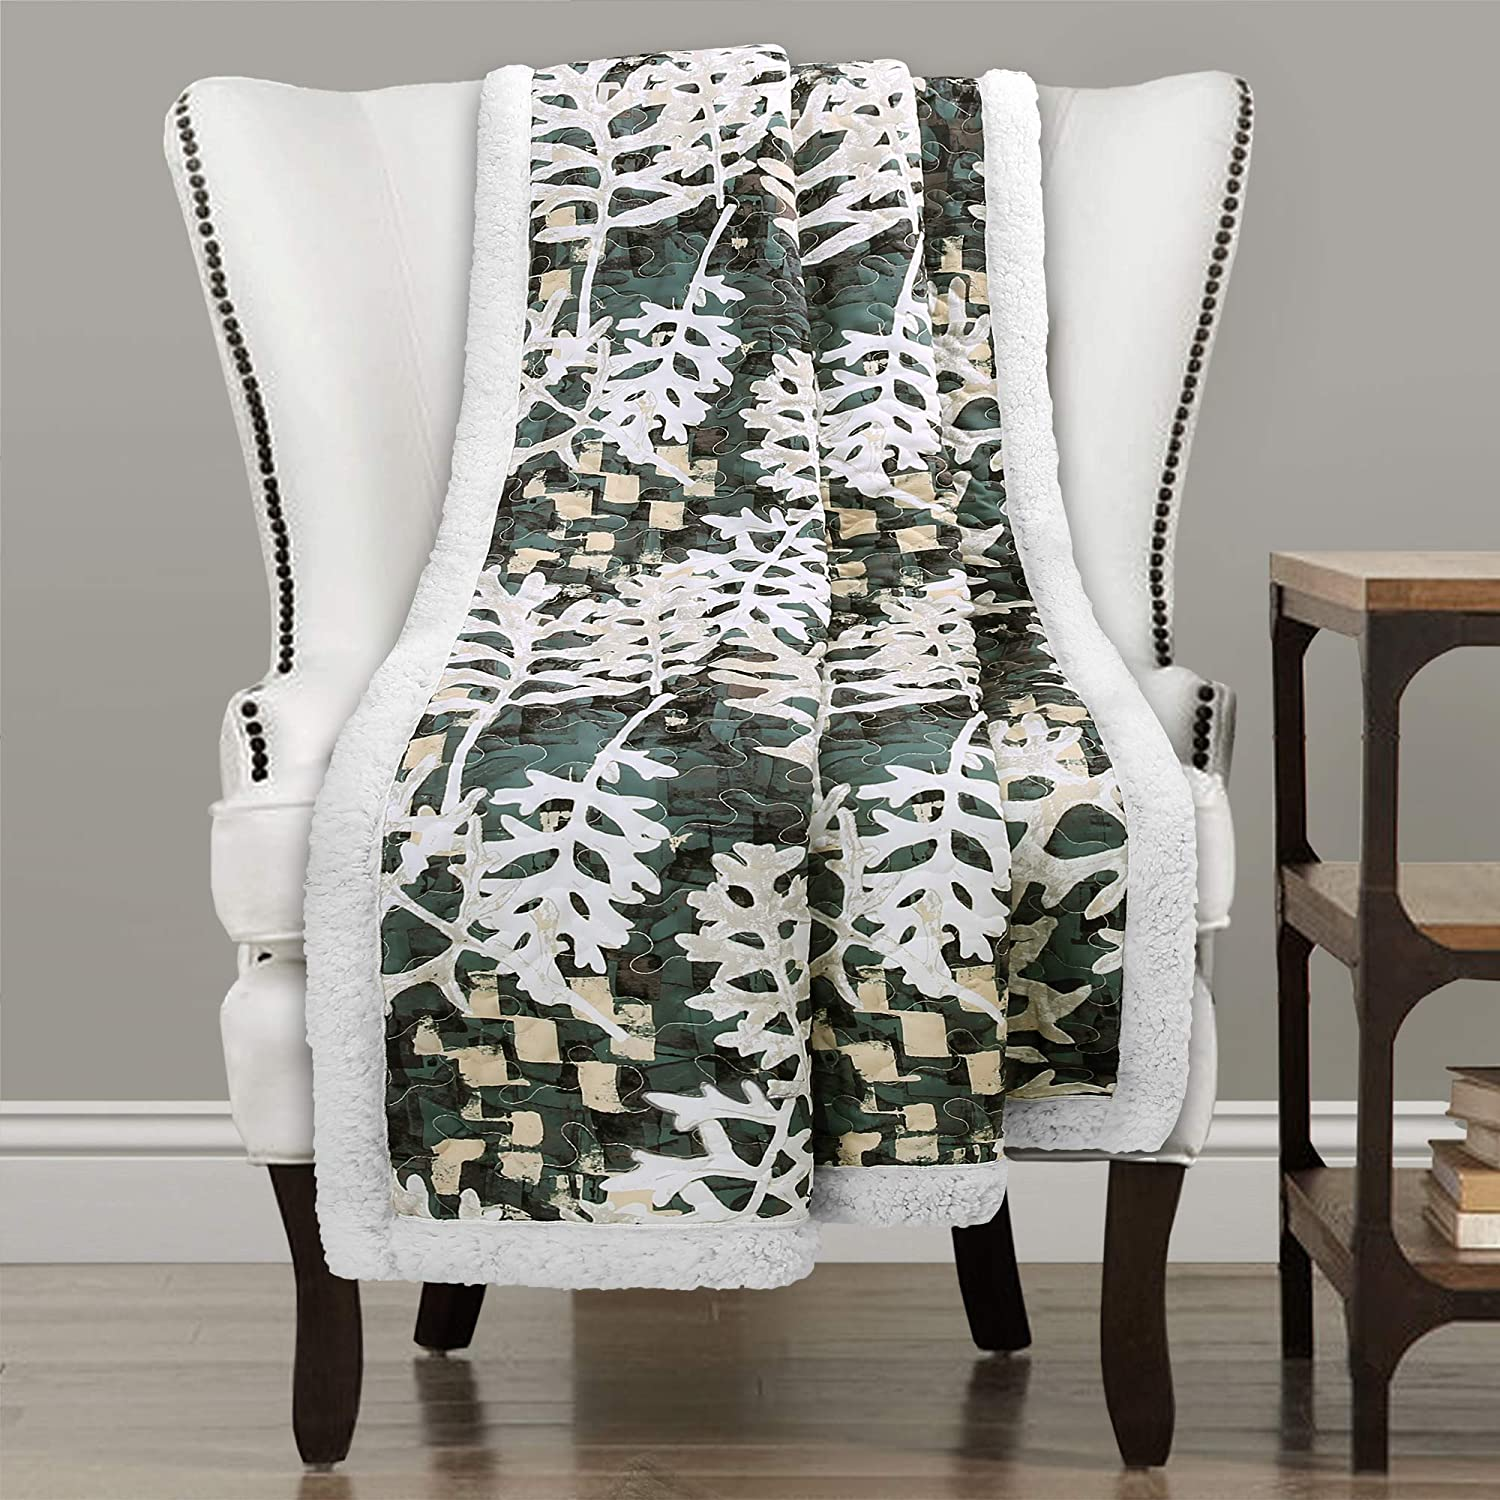 "Lush Decor, Green Camouflage Leaves Reversible Sherpa Throw Blanket with Nature Leaf Print Design-60"" x 50, 60"" x 50"""